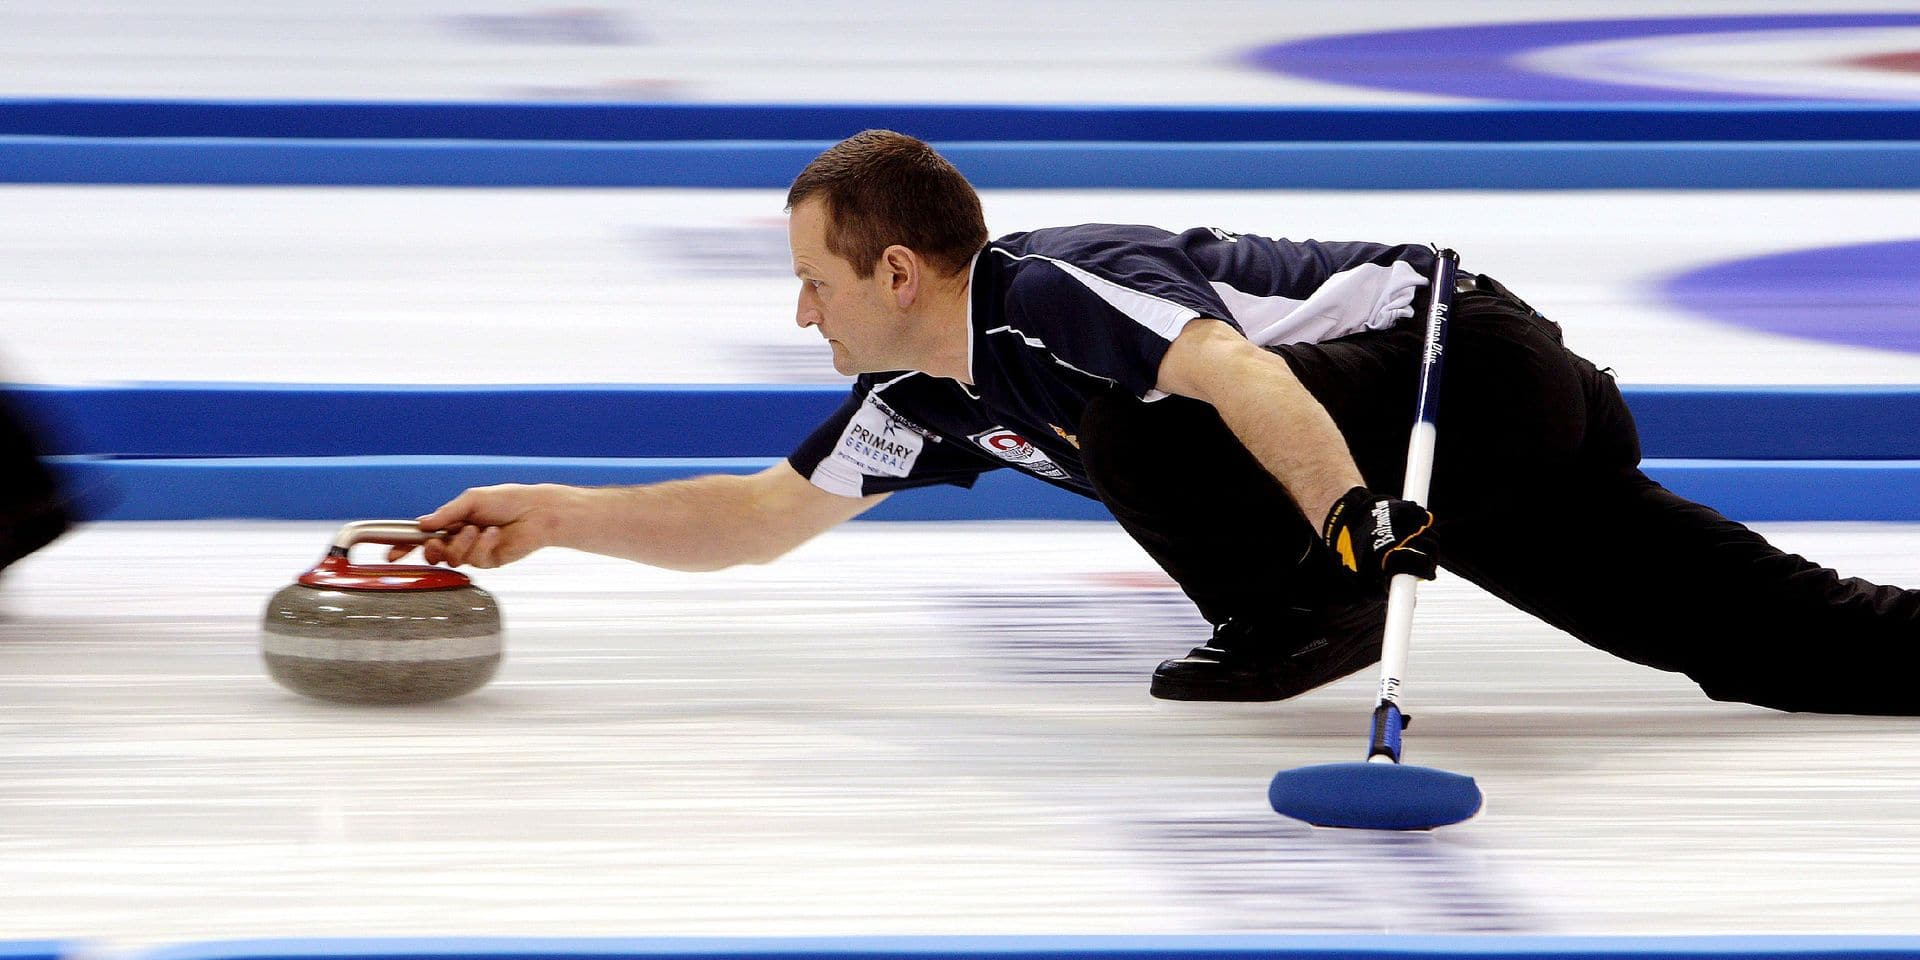 epa01194913 Scotland's Peter Smith is shown in action during the final of the 2007 European Curling Championships against Norway held at Arena Fuessen in Fuessen, Germany, 07 December 2007. EPA/KARL JOSEF HILDENBRAND